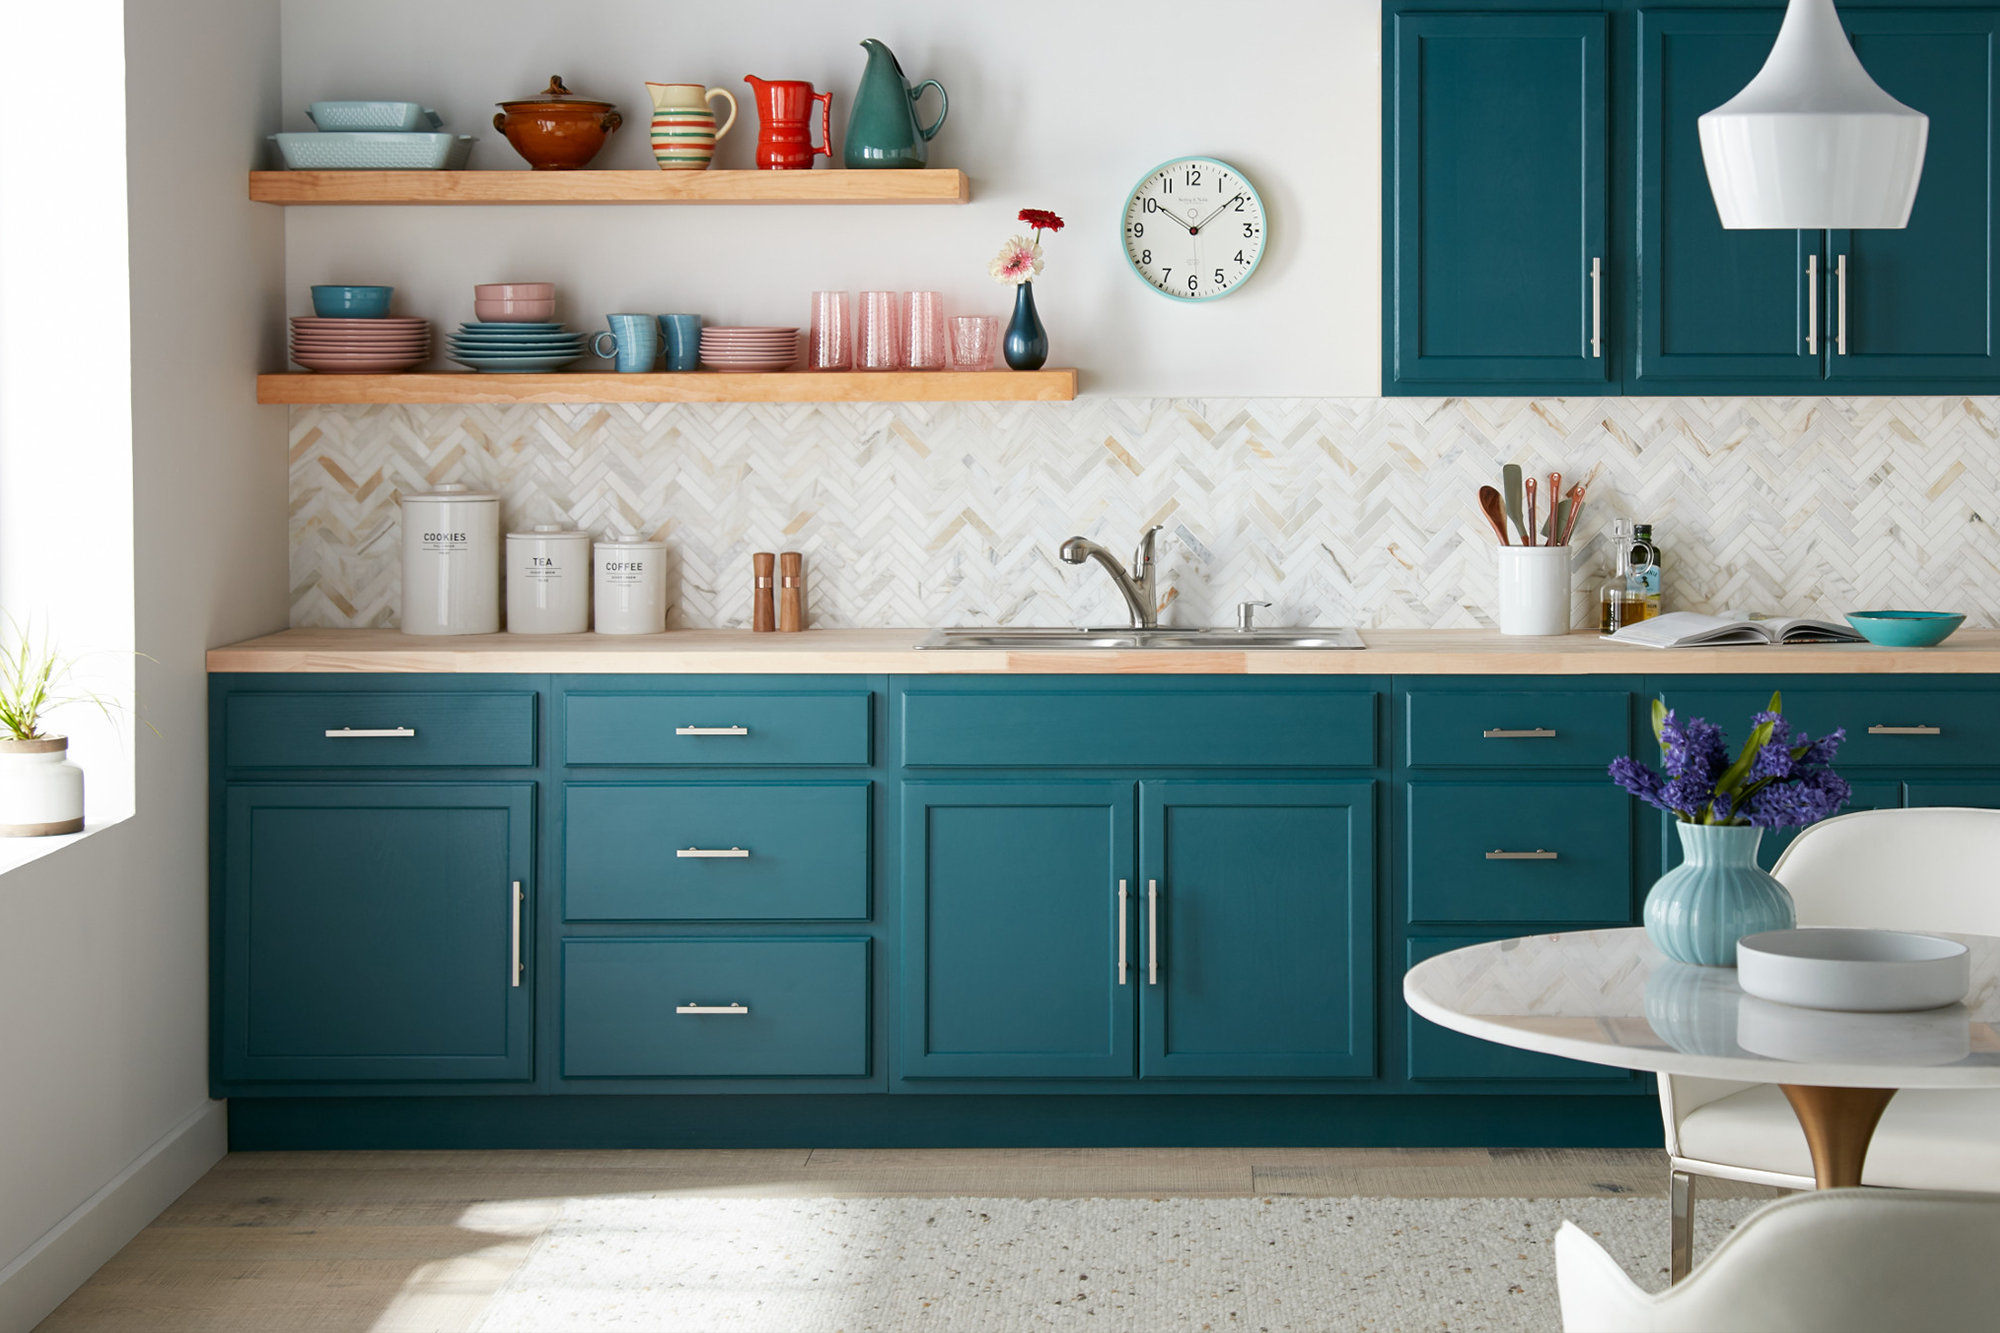 Colorful Kitchen Cabinet Transformation | The Perfect ...